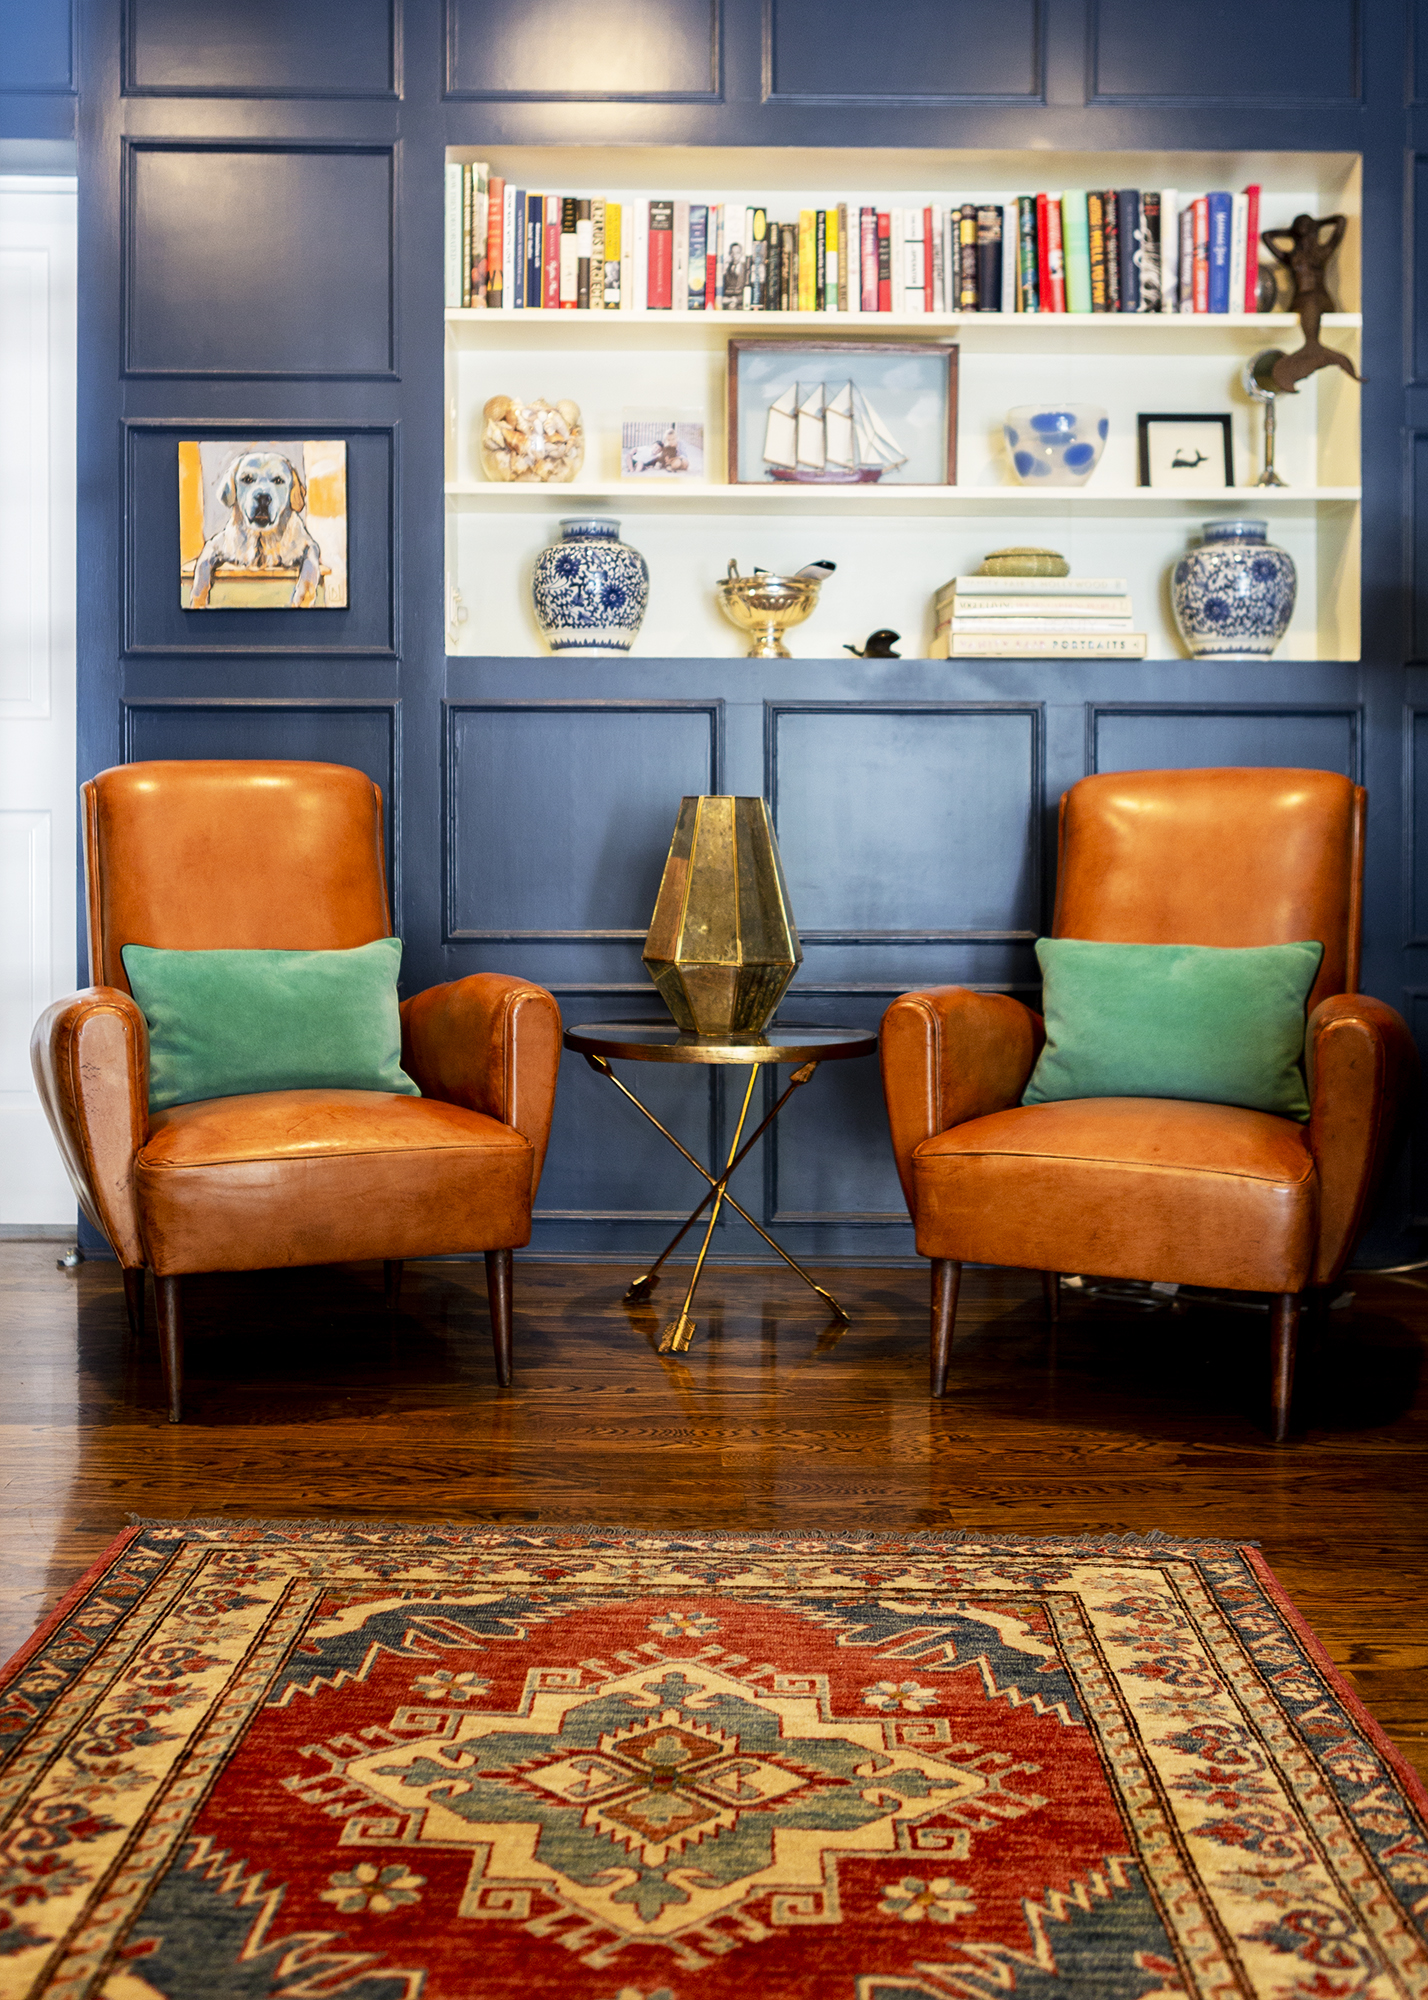 This room is one of our favorites, and not just because those chairs are a vintage pair we brought back from Europe, but because of the way Punch put the room together. The use of color and patterns really bring the elements together.